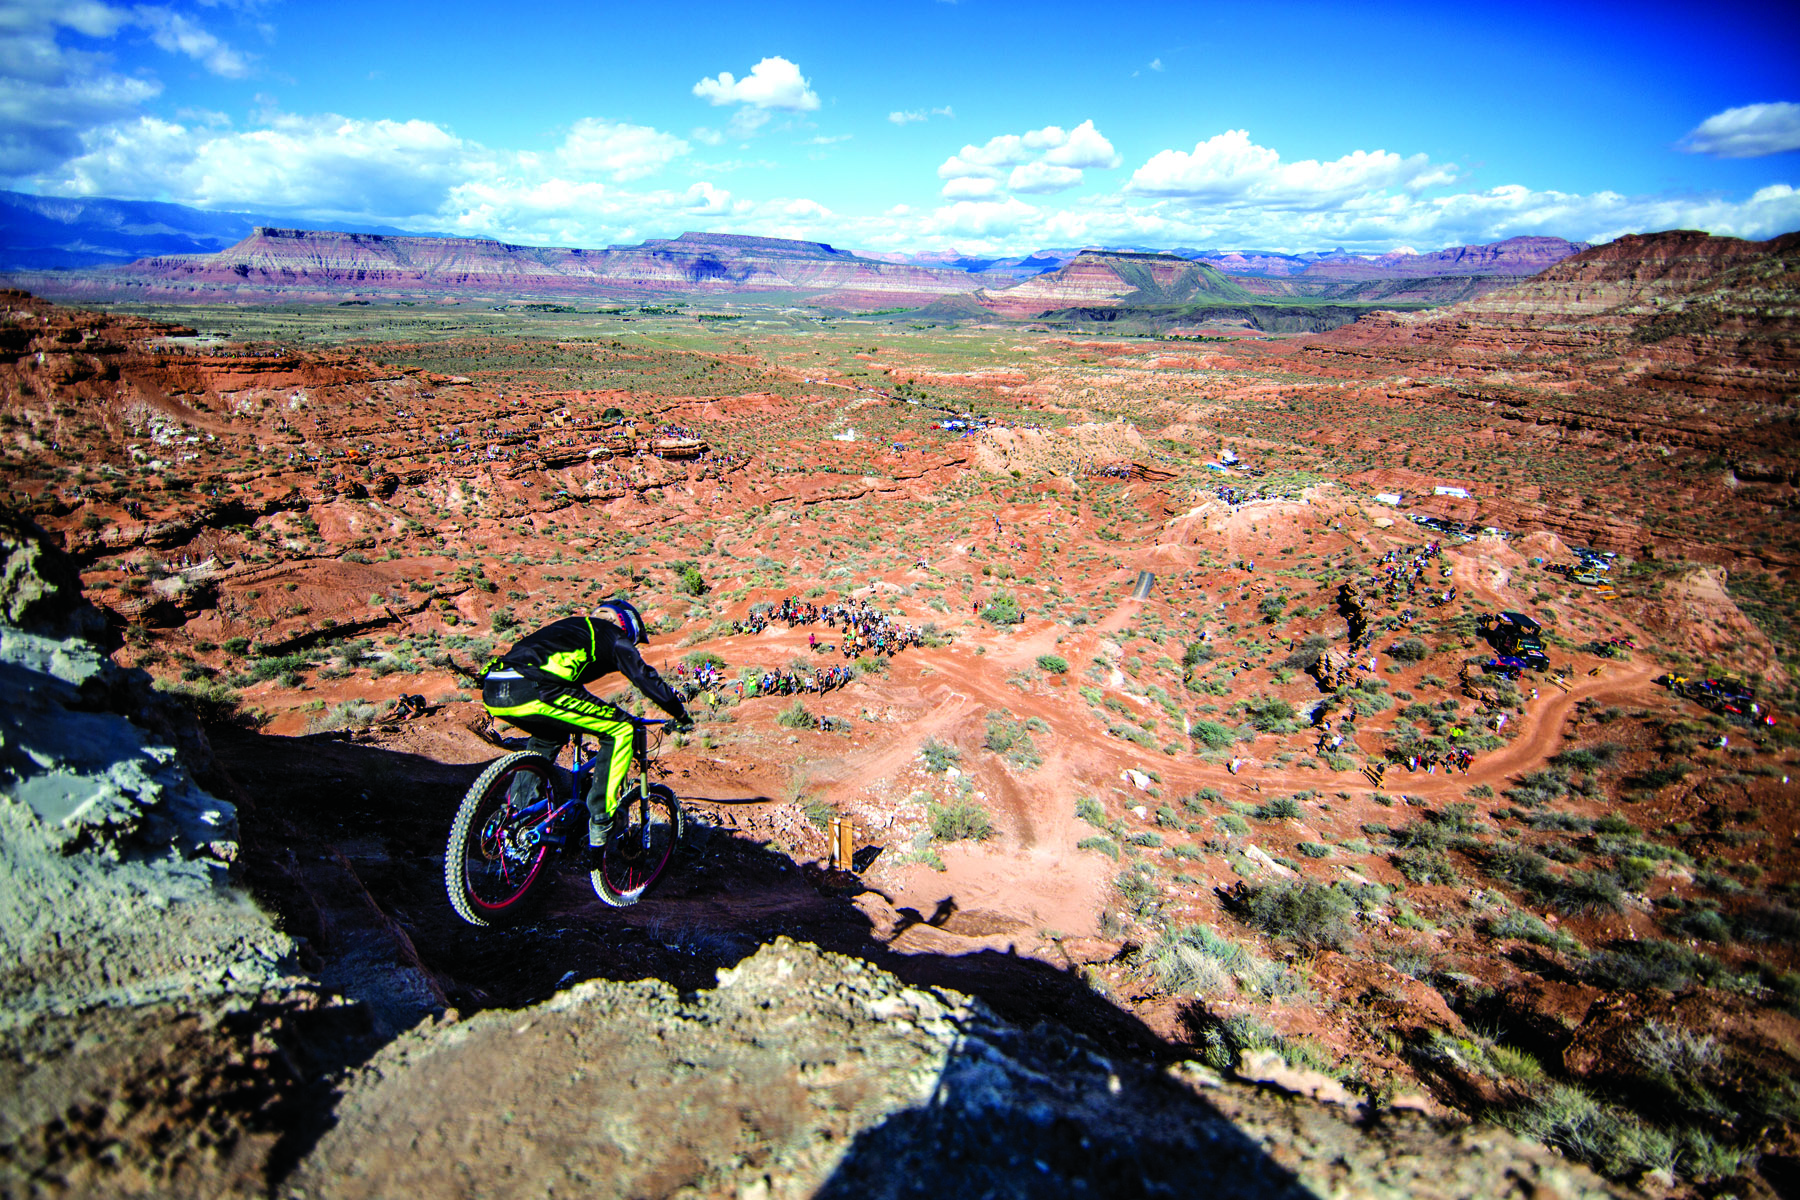 Paul Basagoitia during the Red Bull Rampage Finals in 2014. PICTURE CREDIT:Dean Treml/Red Bull Content Pool